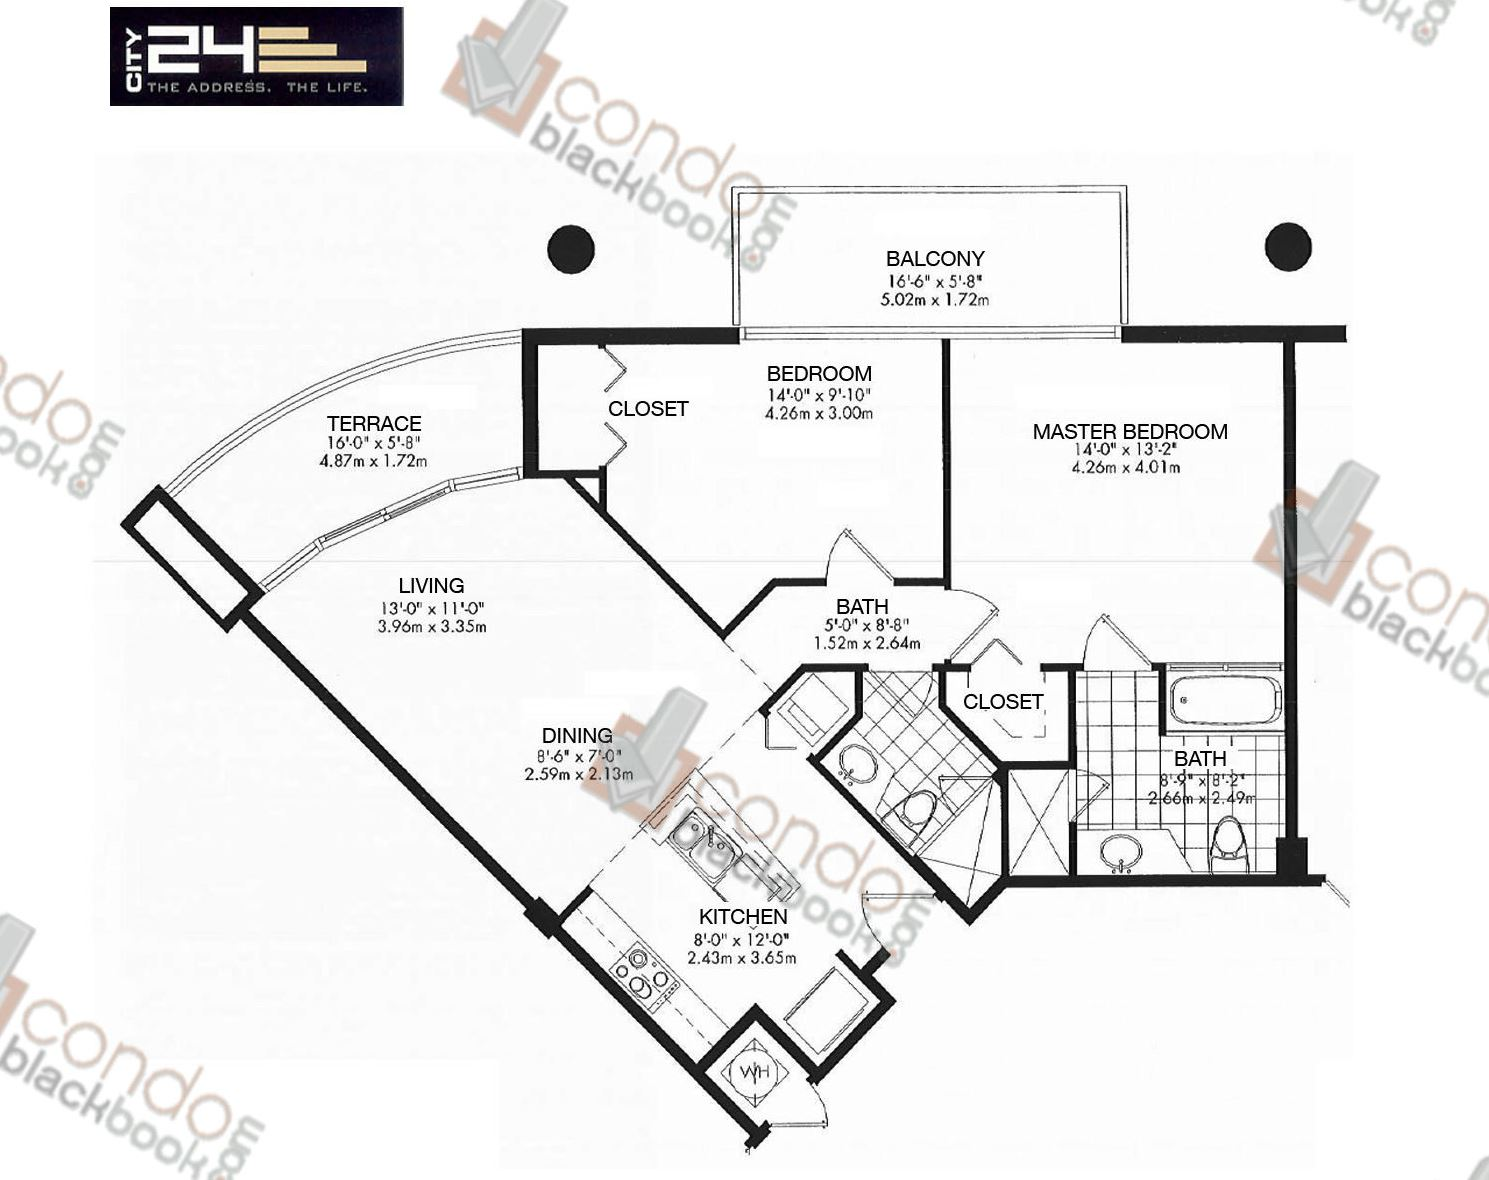 Floor plan for City 24 Edgewater Miami, model Unit B2, line 05,06,11,12,10, 2/2 bedrooms, 948 sq ft